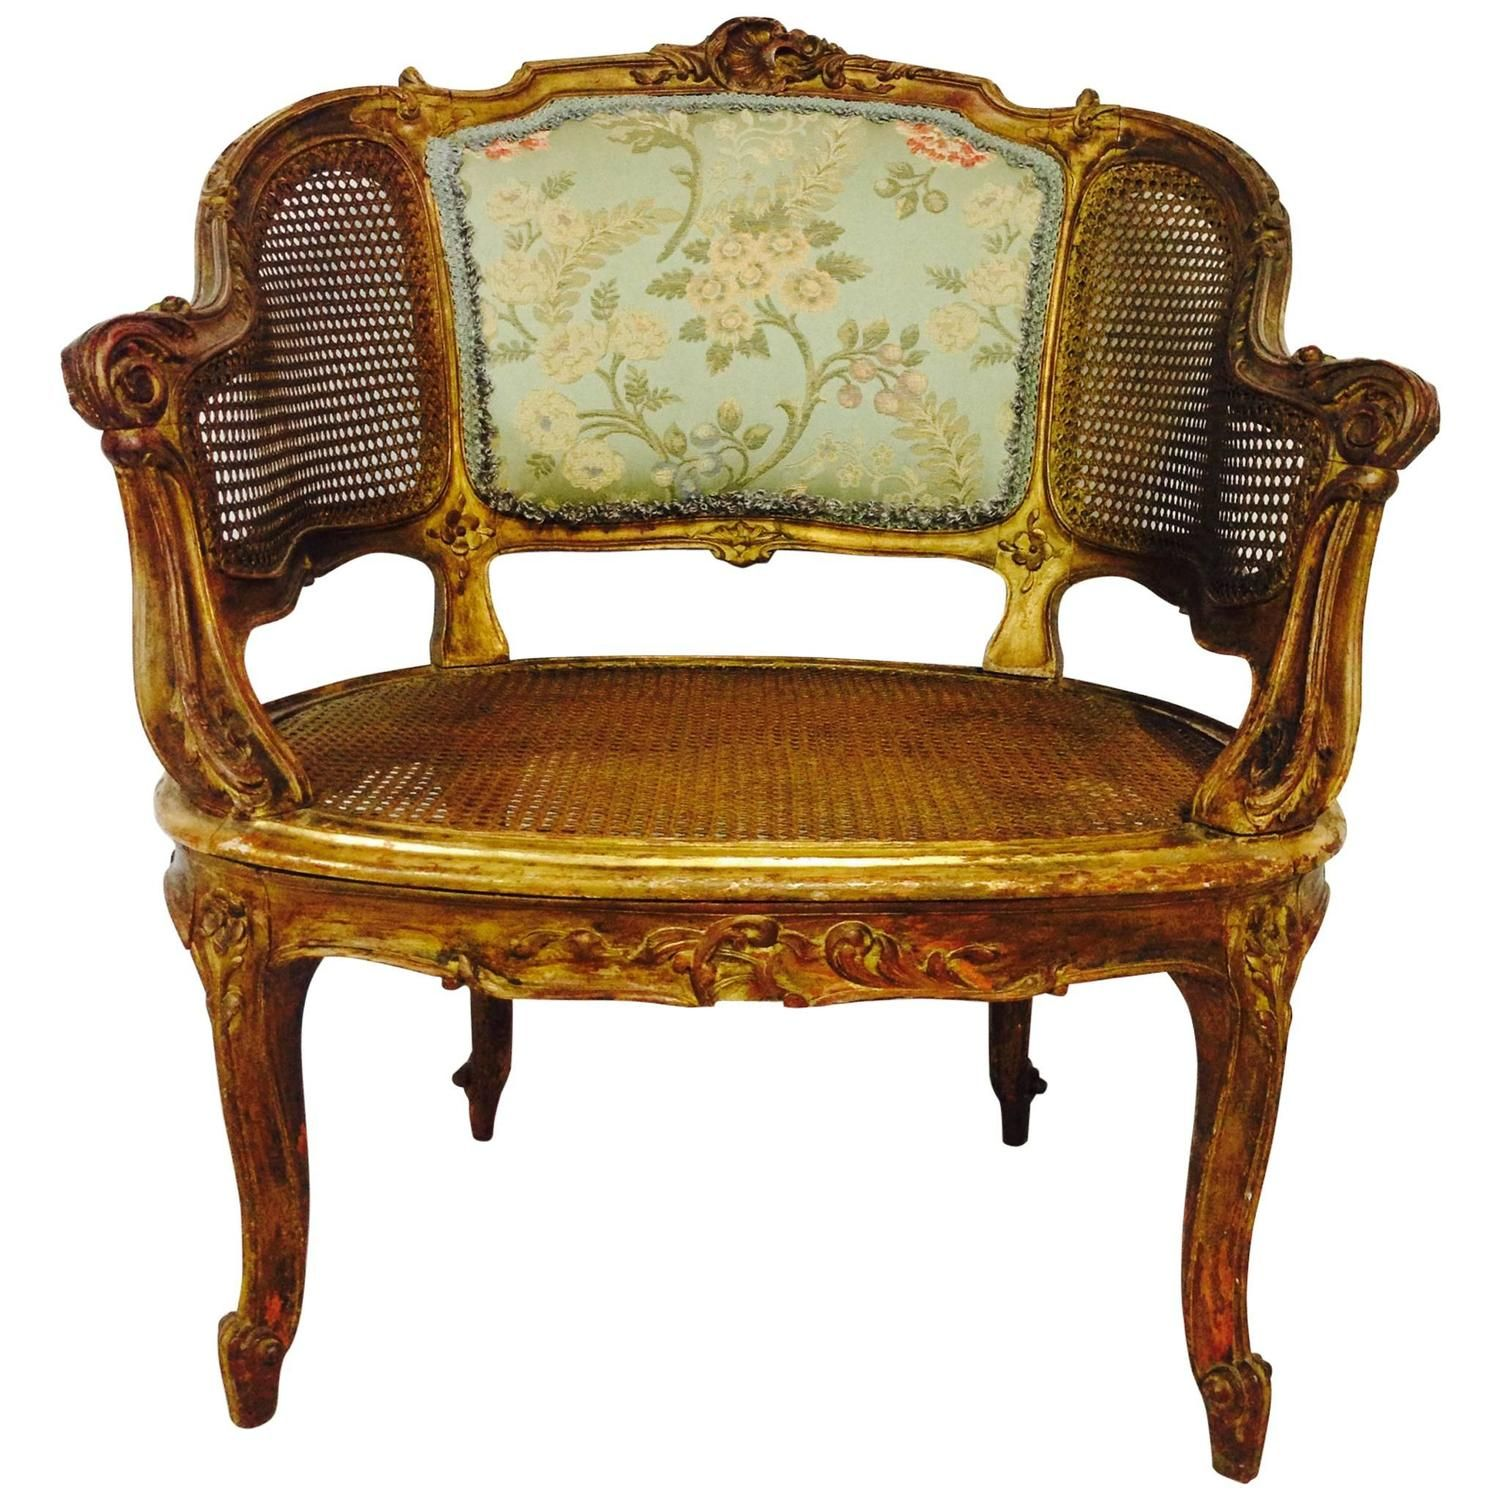 French 19th Century Louis XV Style Gilt wood Cane Back Chair